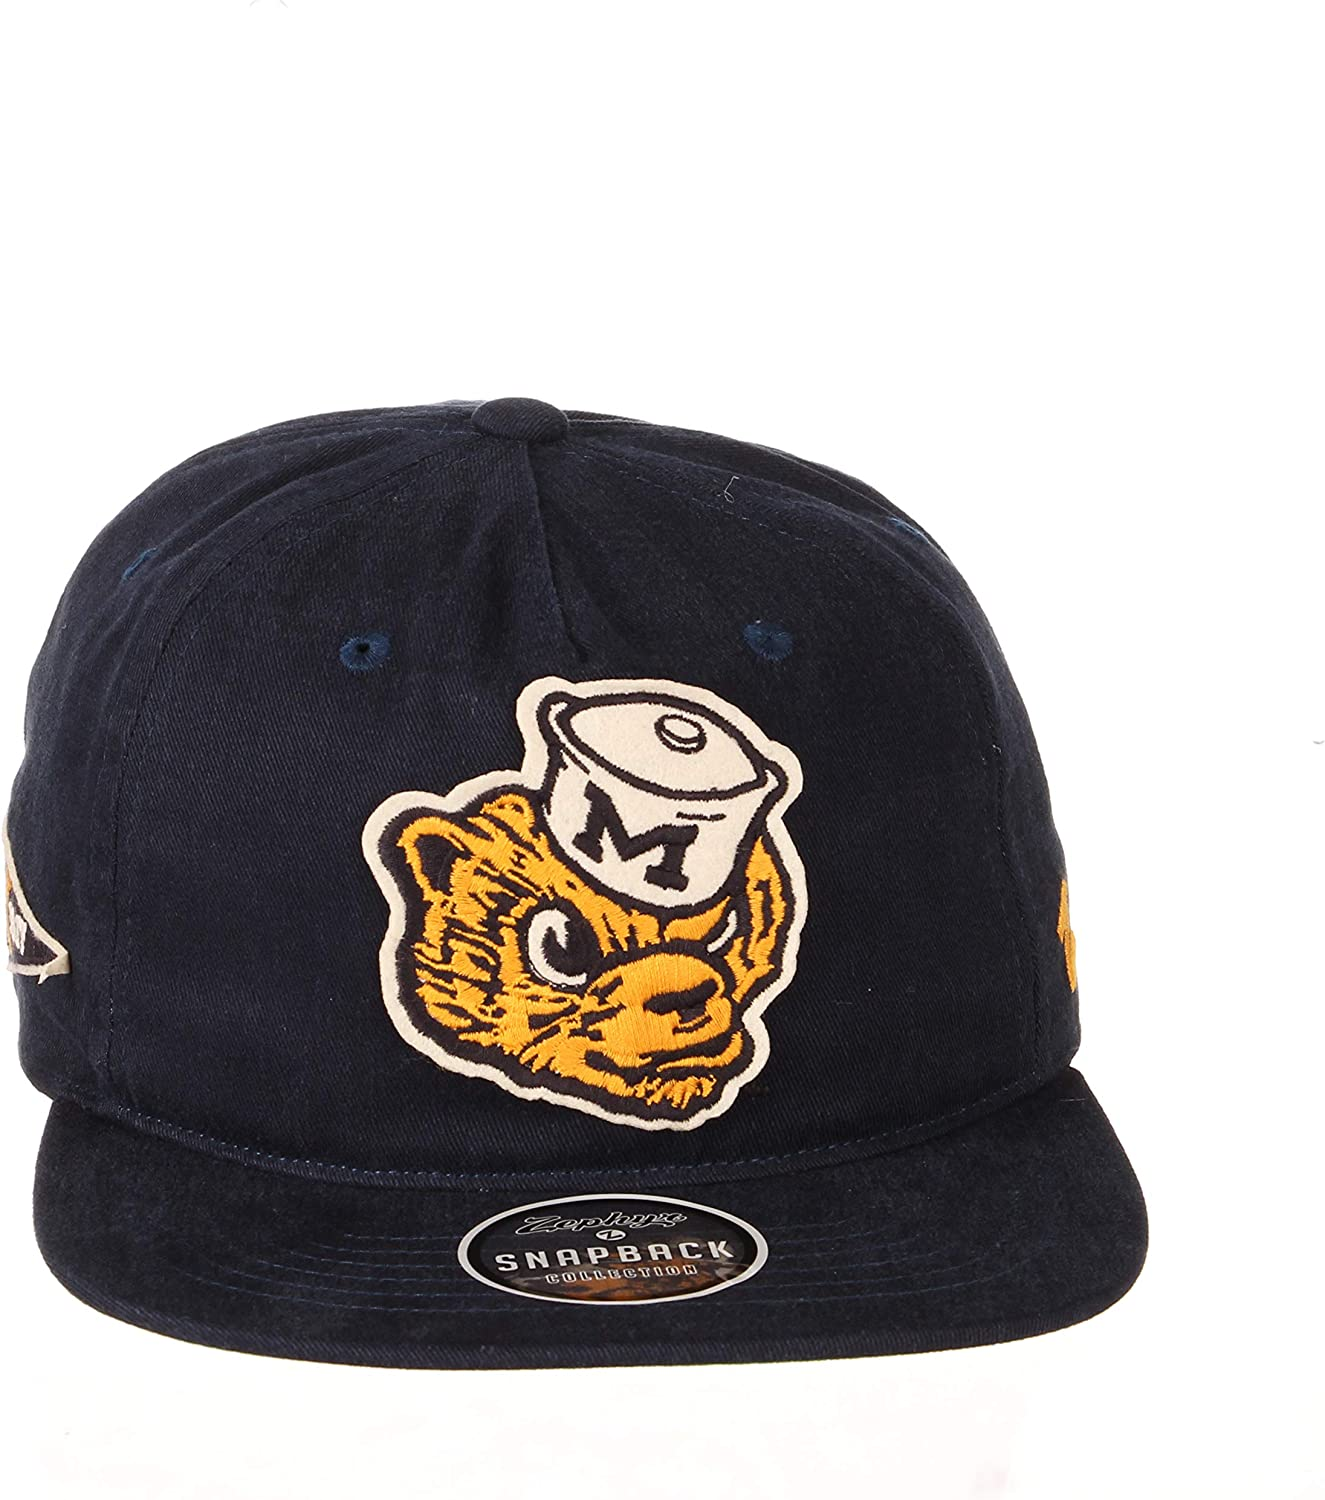 Adjustable NCAA Zephyr Michigan Wolverines Mens Archive Vault Collection Snapback Hat Primary Team Color